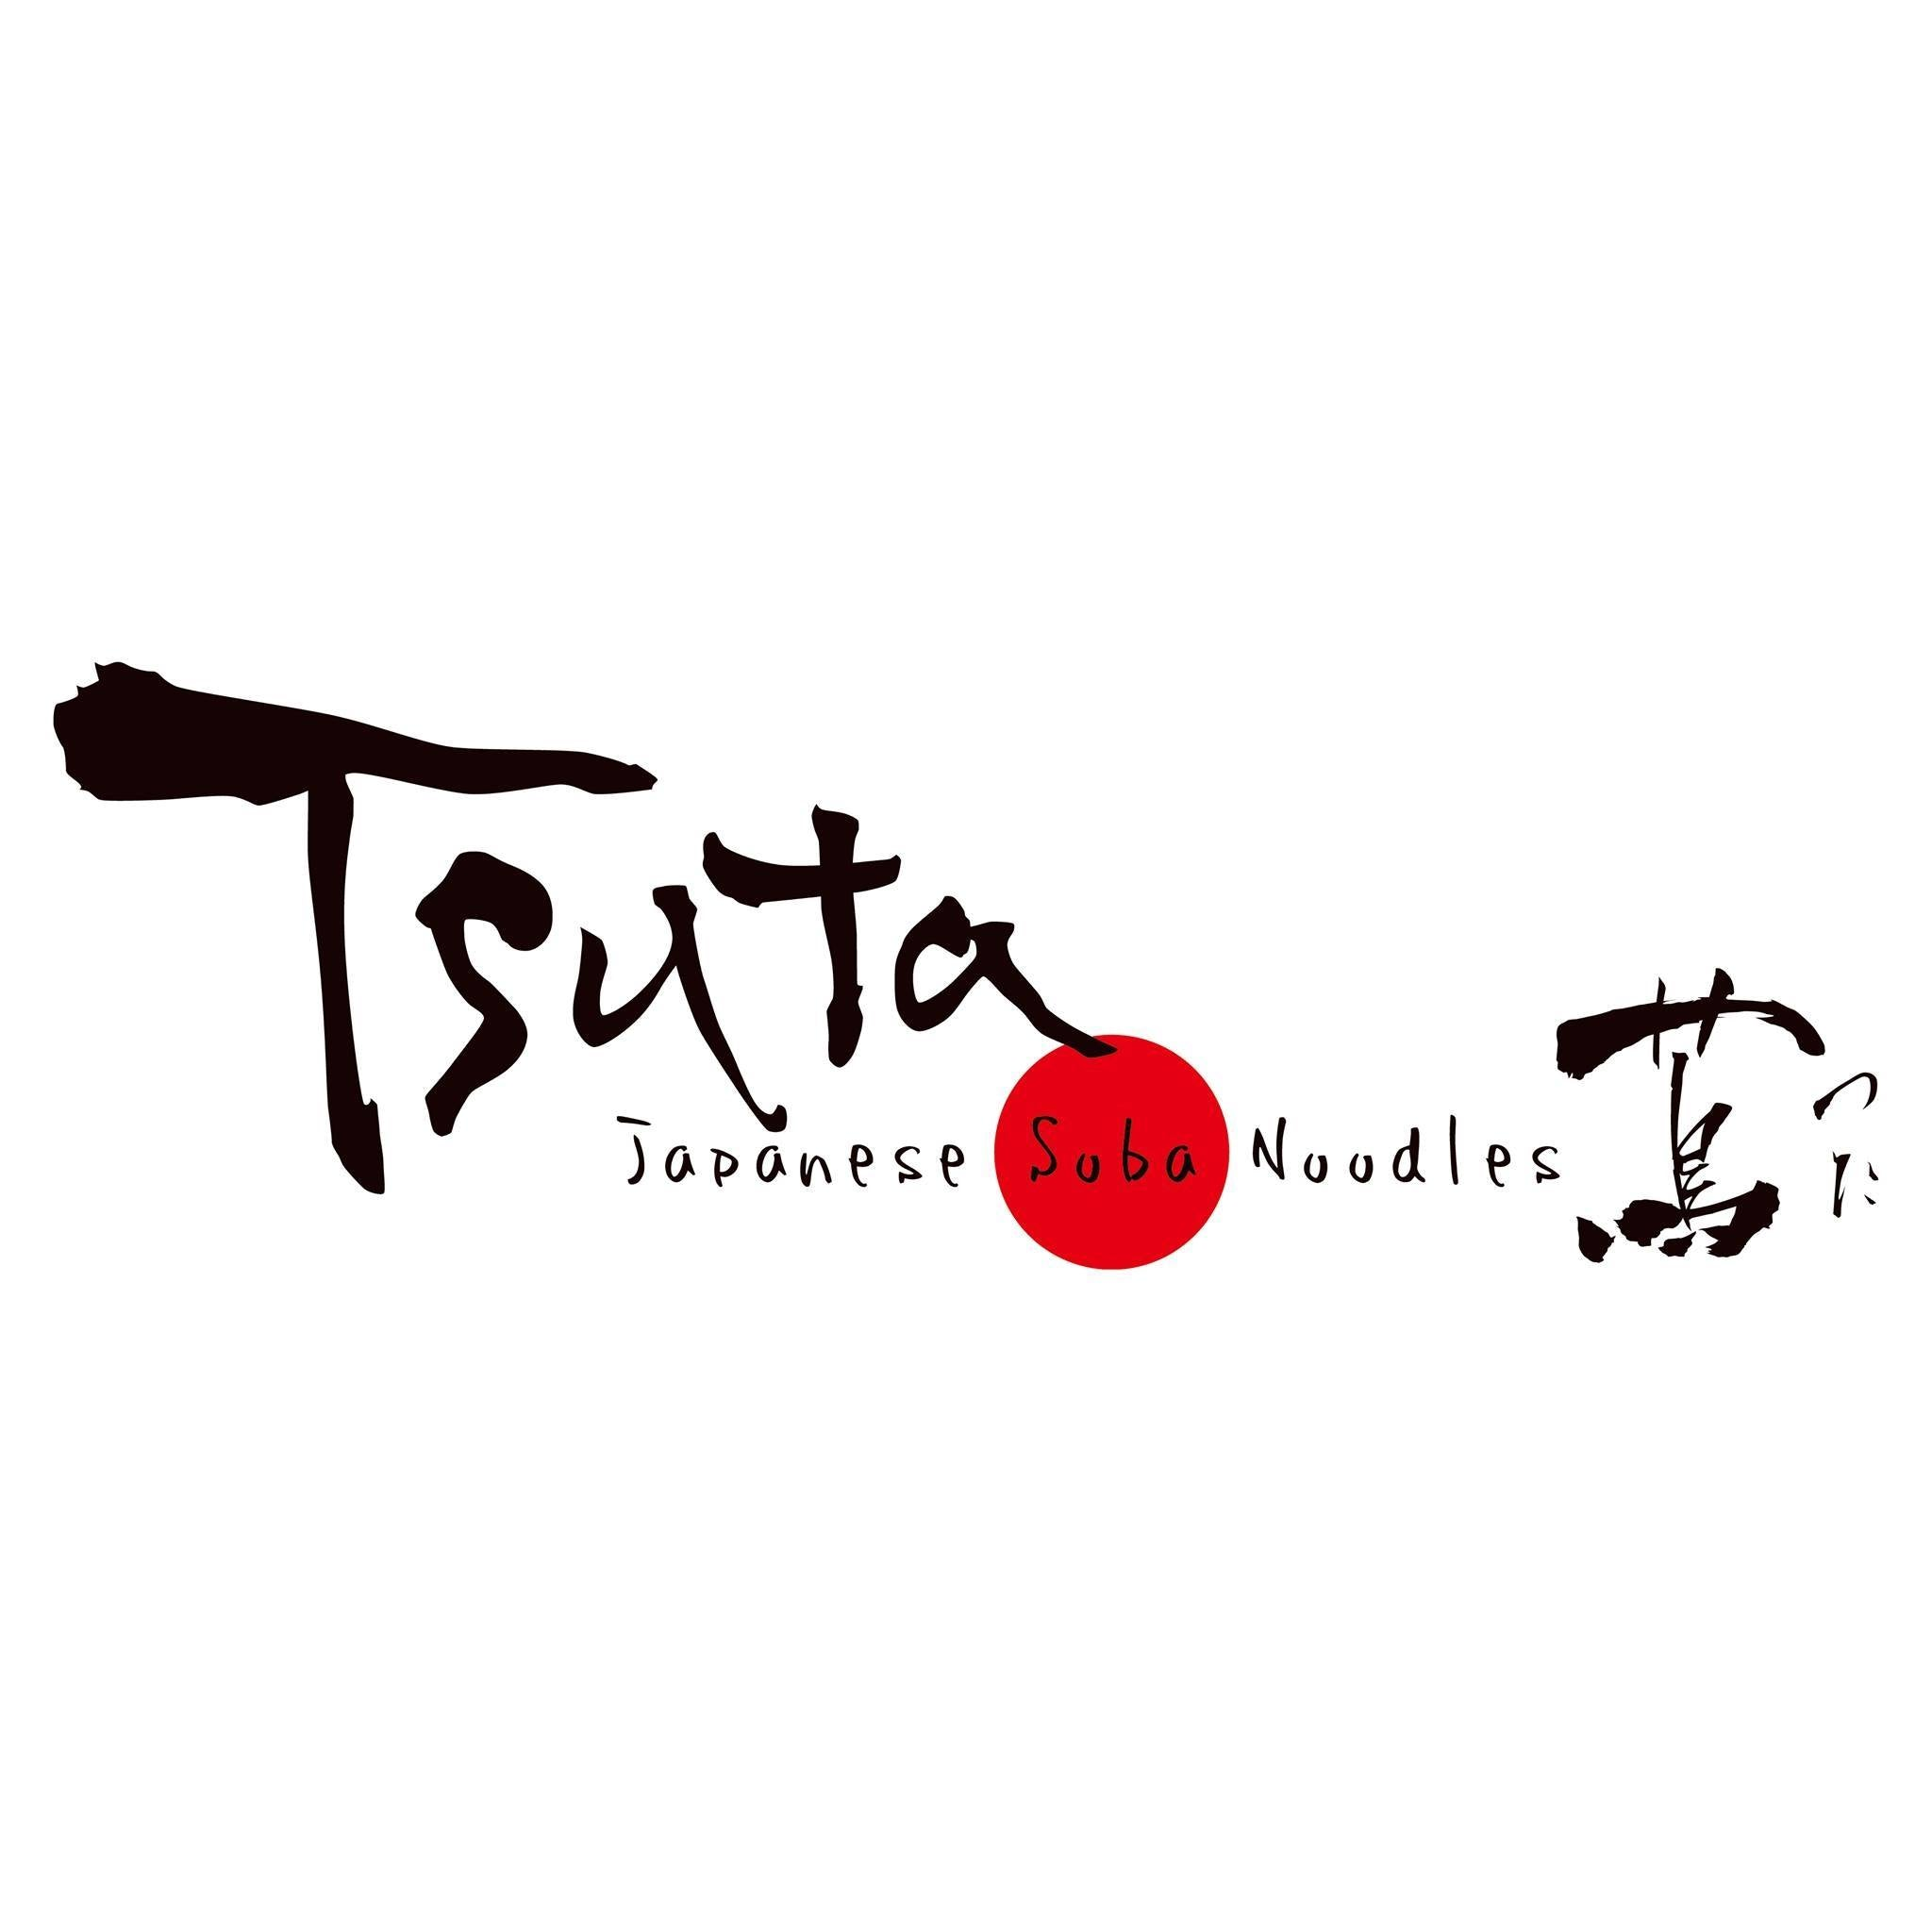 Tsuta Japanese Soba Noodle: 10% Off with min spending of $40